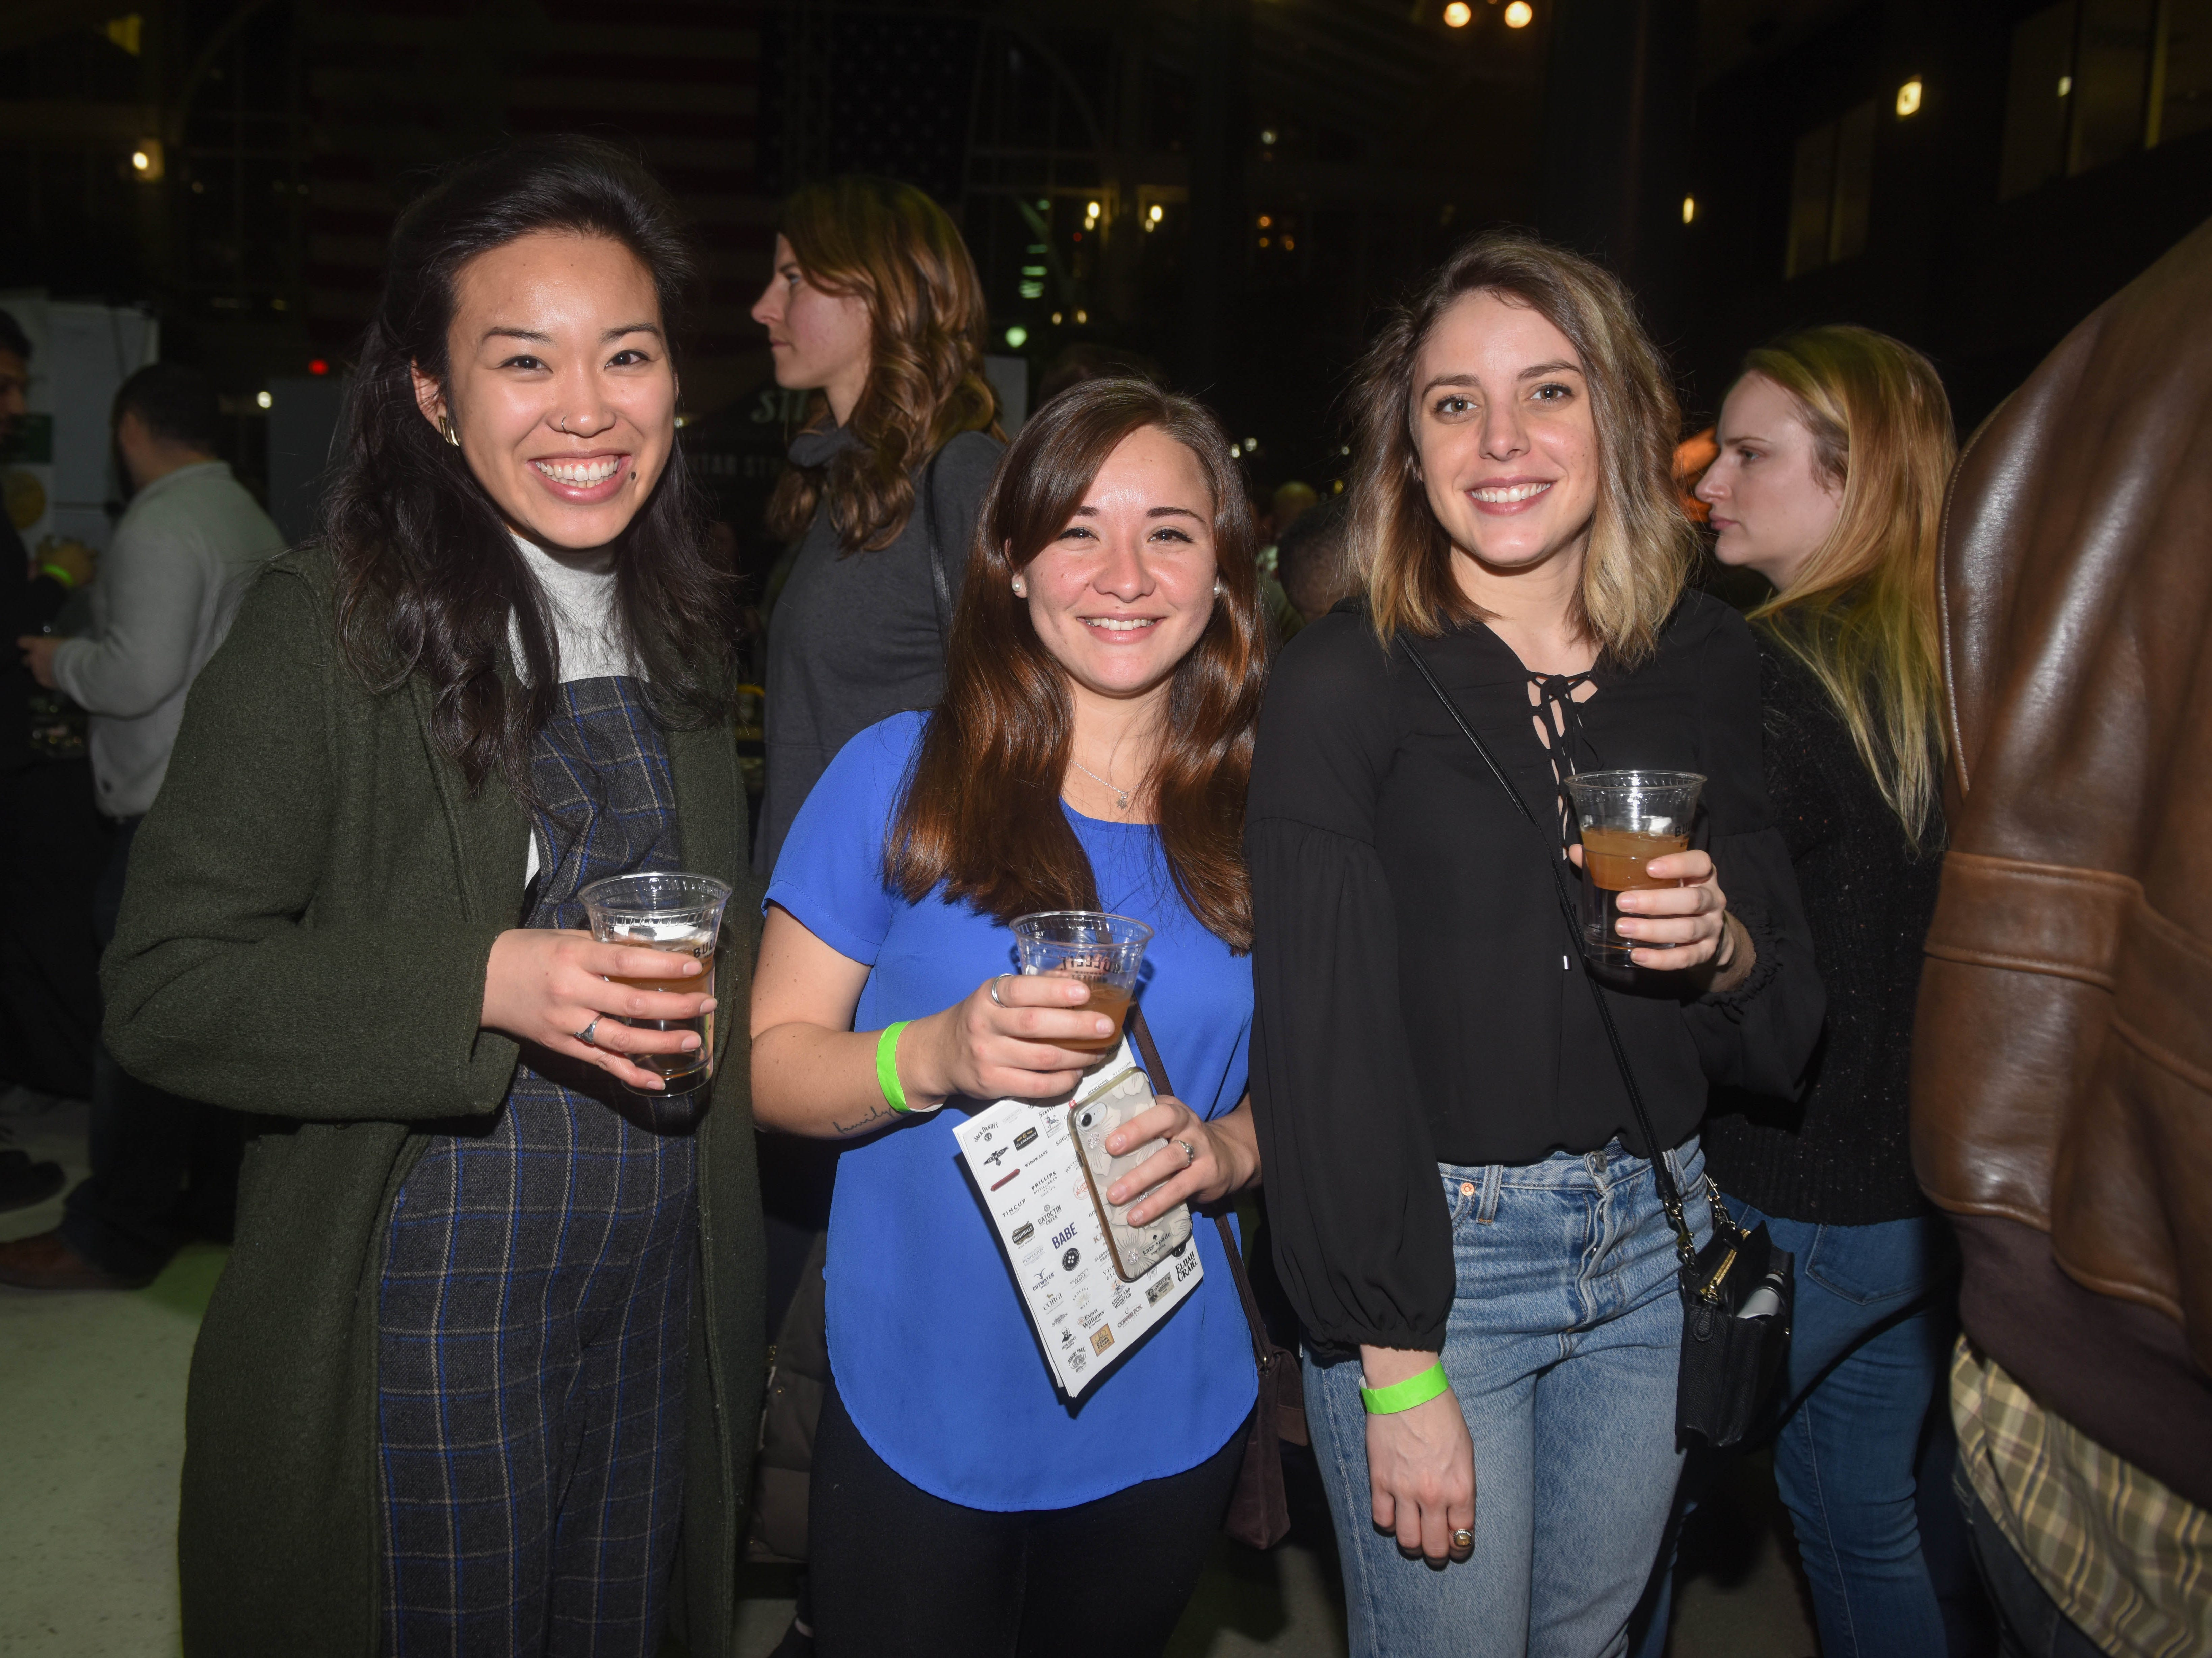 Ally, Tiffany and Tori. Jersey City Whiskey Fest was held at Harborside Atrium. The event featured over 100 styles of whiskey and spirits. 02/01/2019